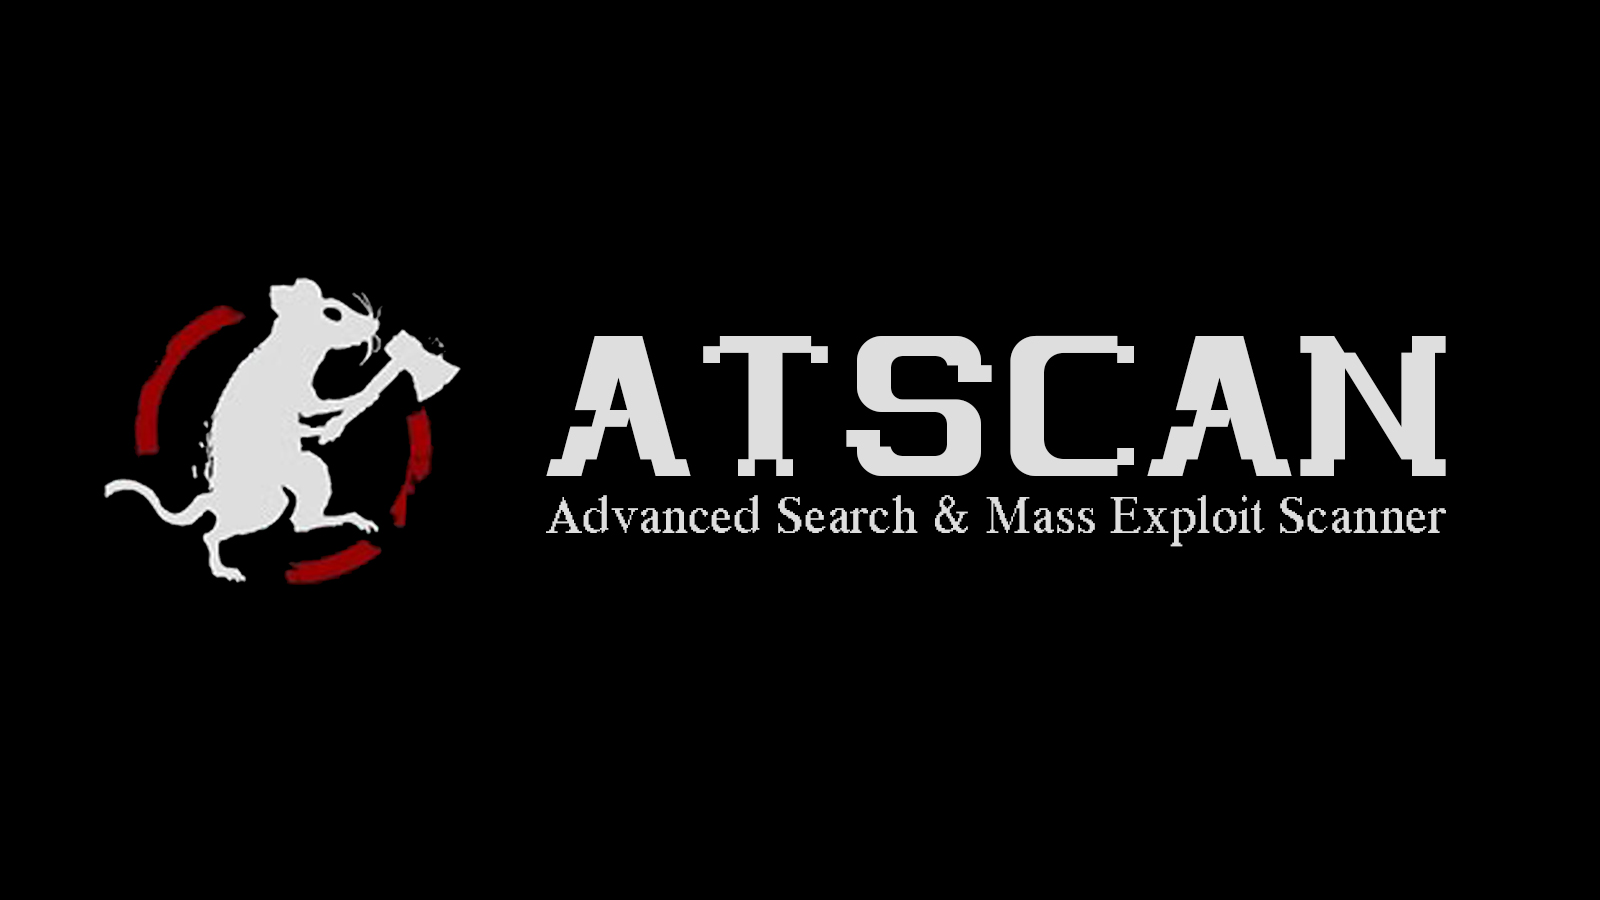 ATSCAN - Advanced Search & Mass Exploit Scanner